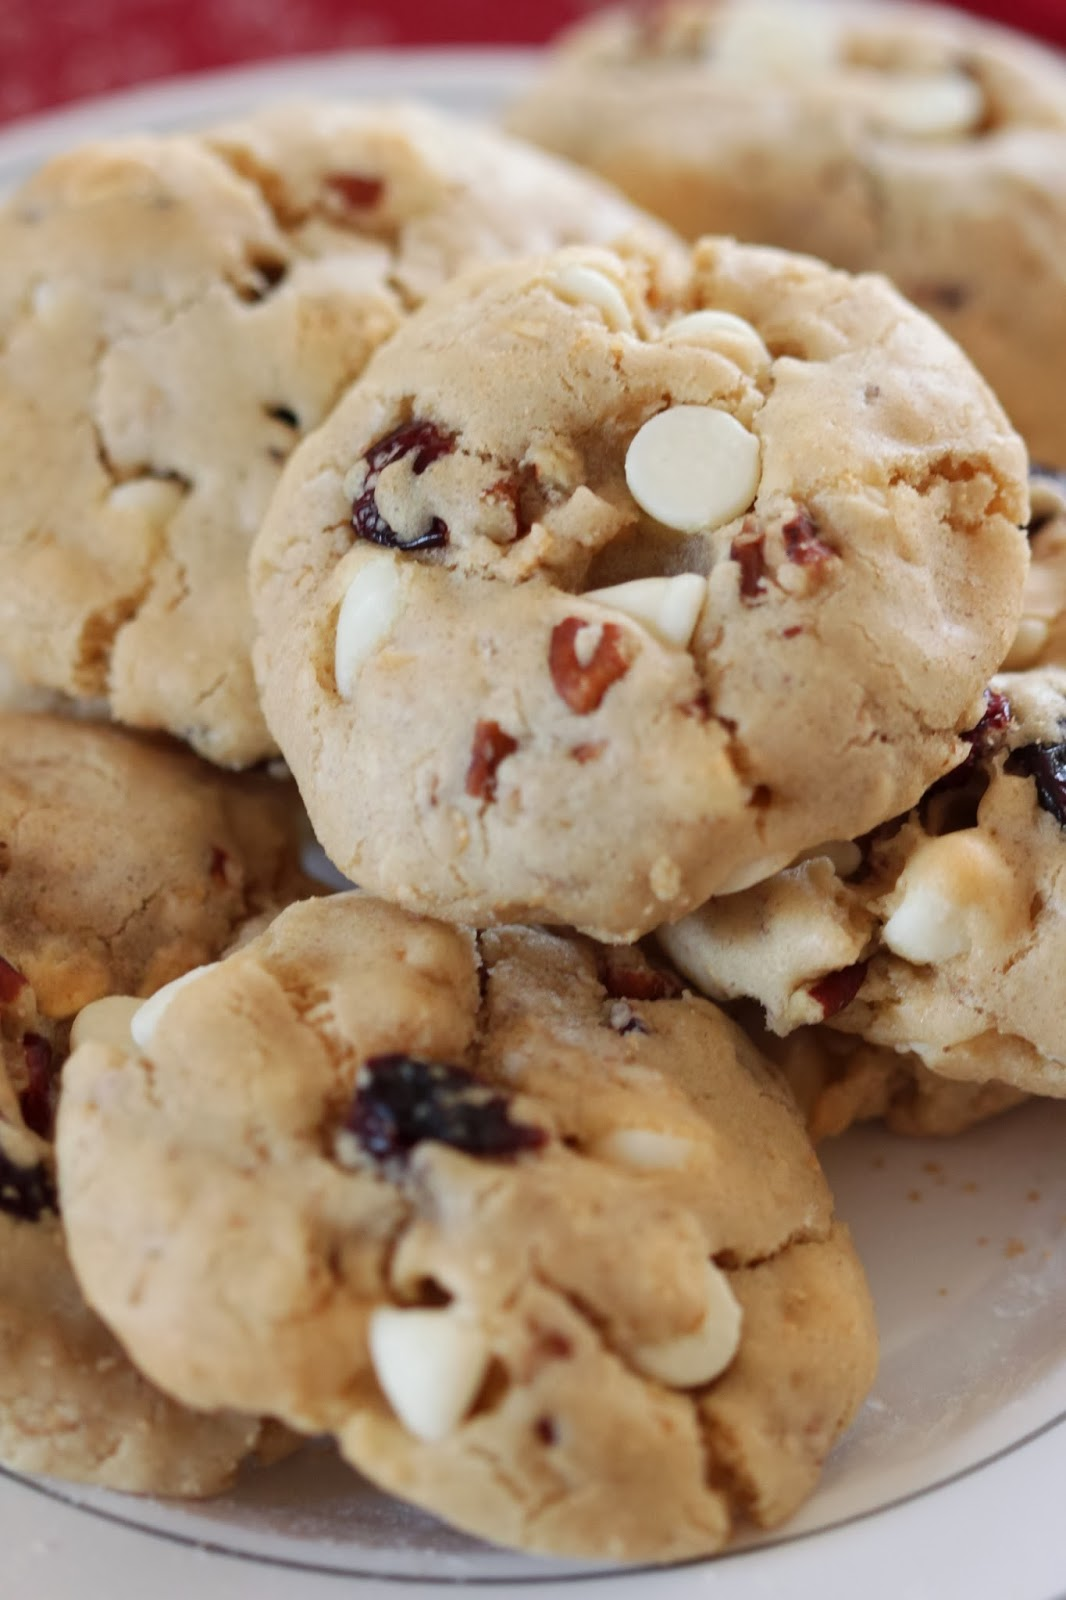 Olive Oil Cookies with White Chocolate Cranberries and Pecans